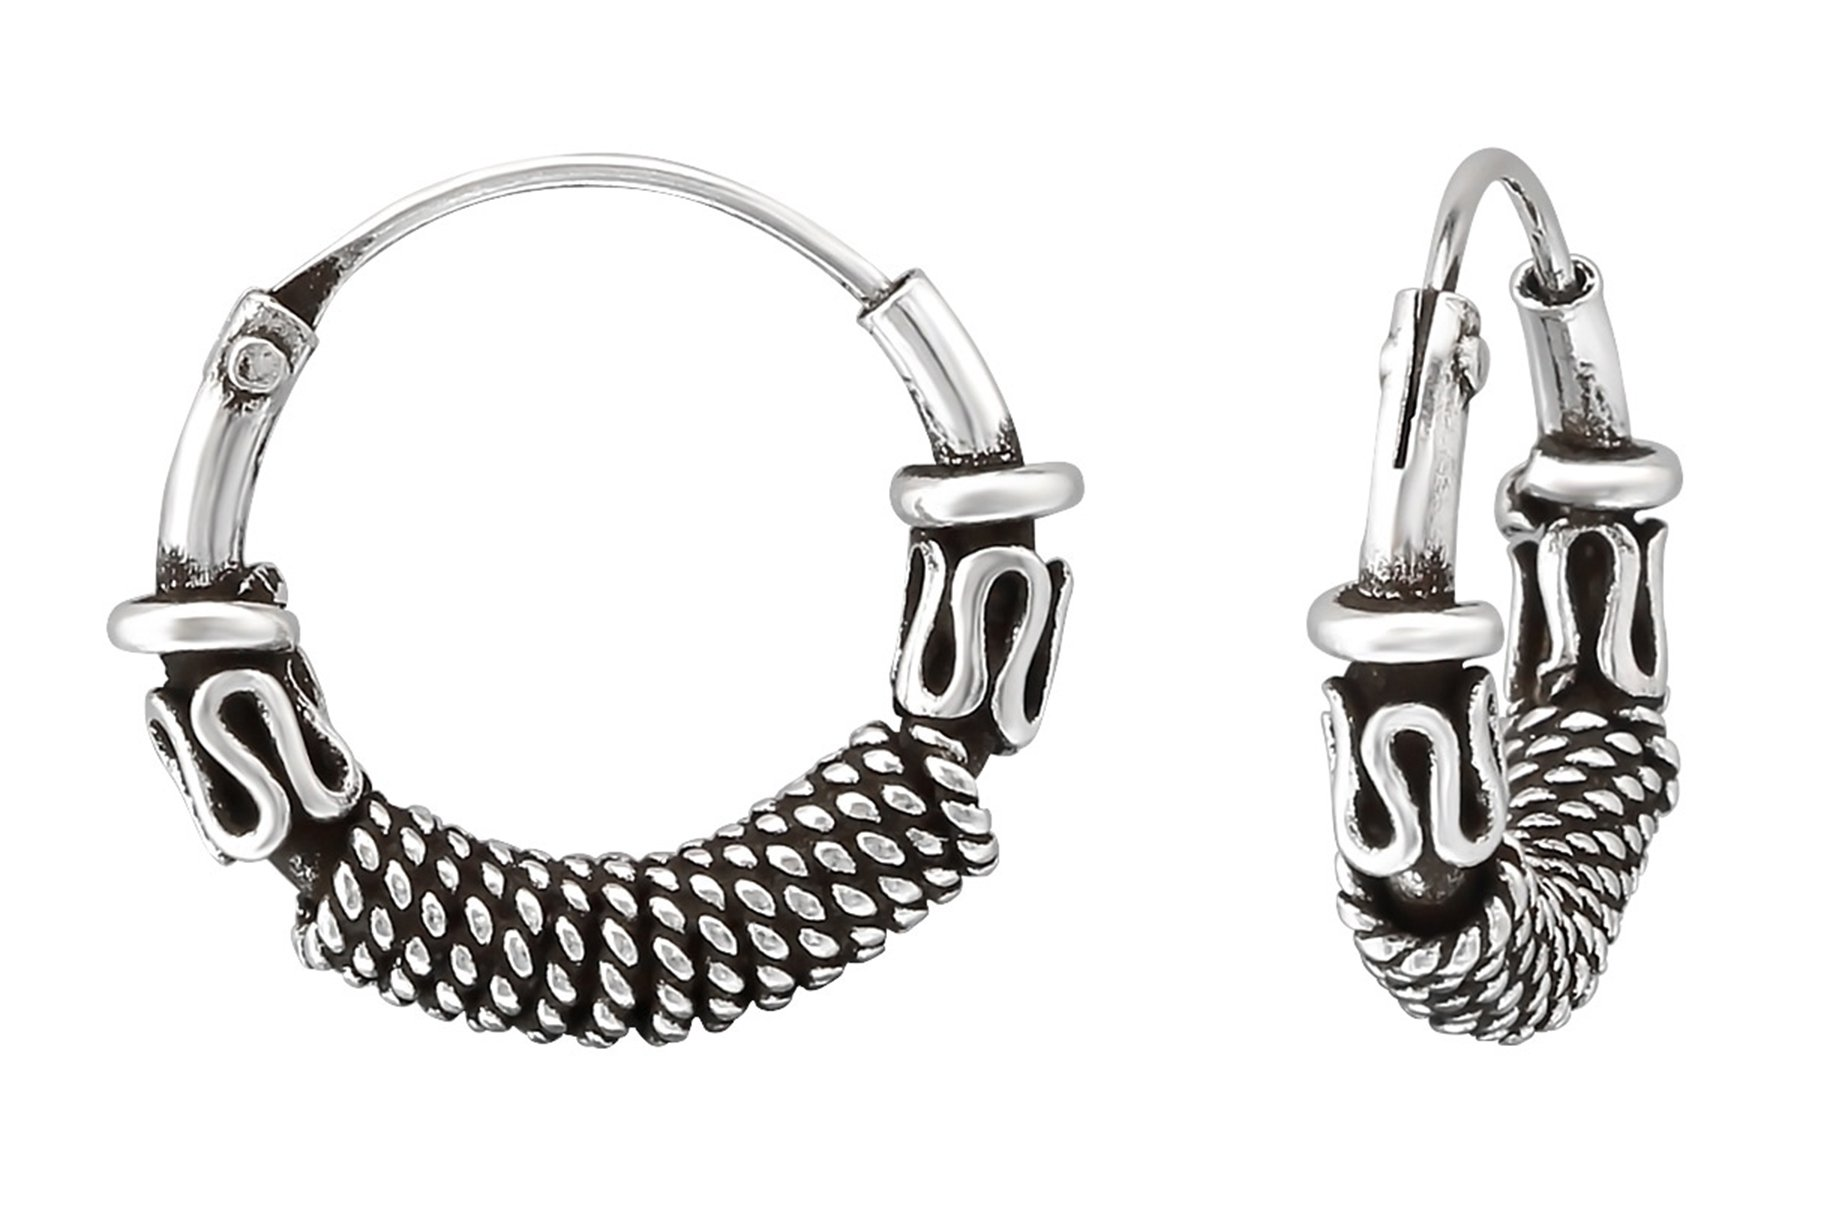 Best Wing Jewelry .925 Sterling Silver ''12mm Bali-Style / Tribal-Style'' Tiny Small Endless Hoop Earrings for Cartilage, Ear, Nose and Lip (035289)